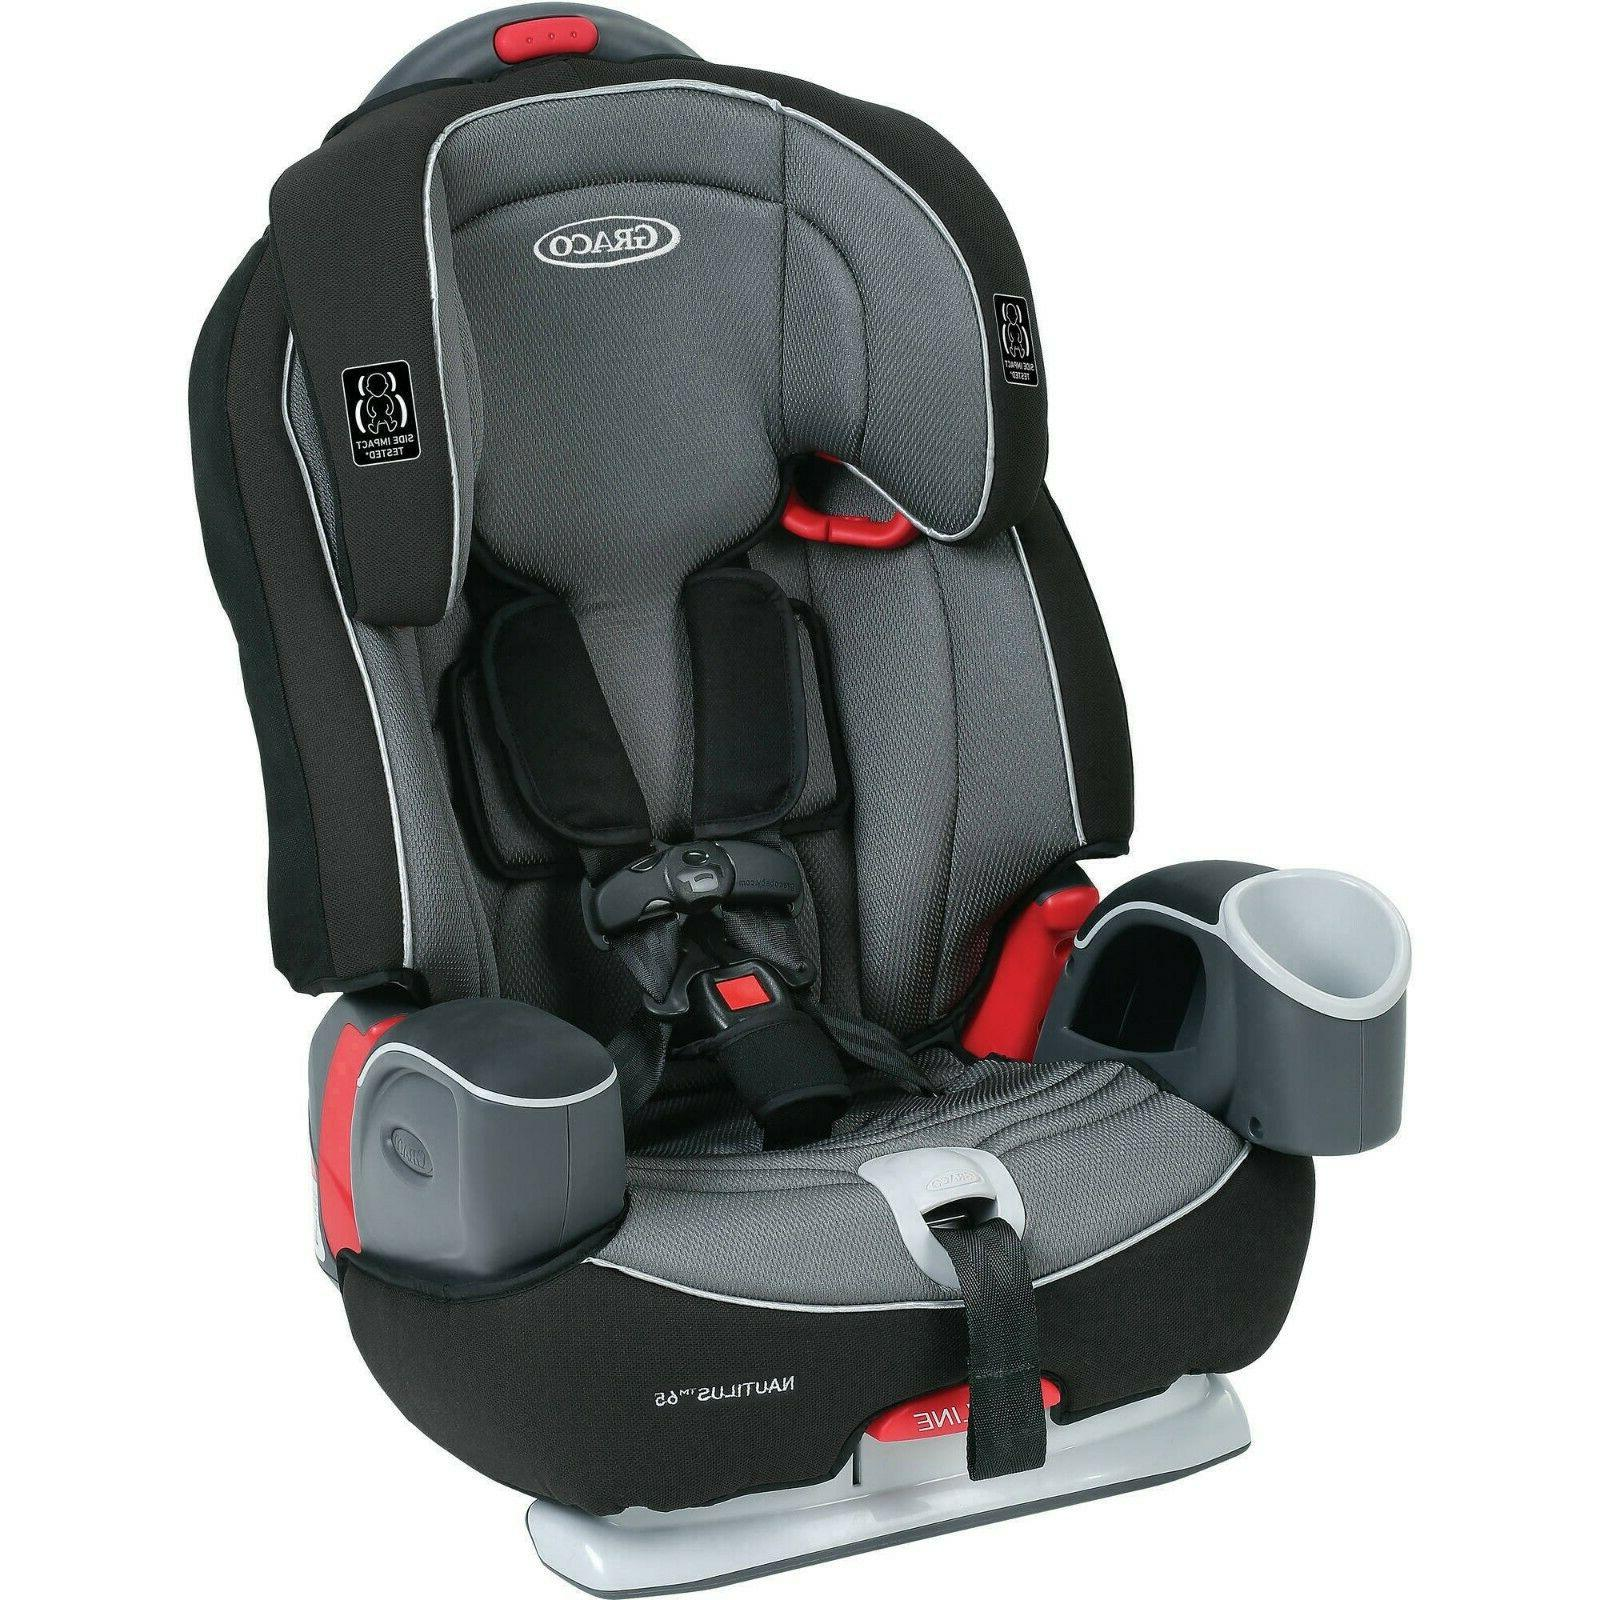 65 3-in-1 Harness Booster Car Seat Baby-Toddler- Child Conve